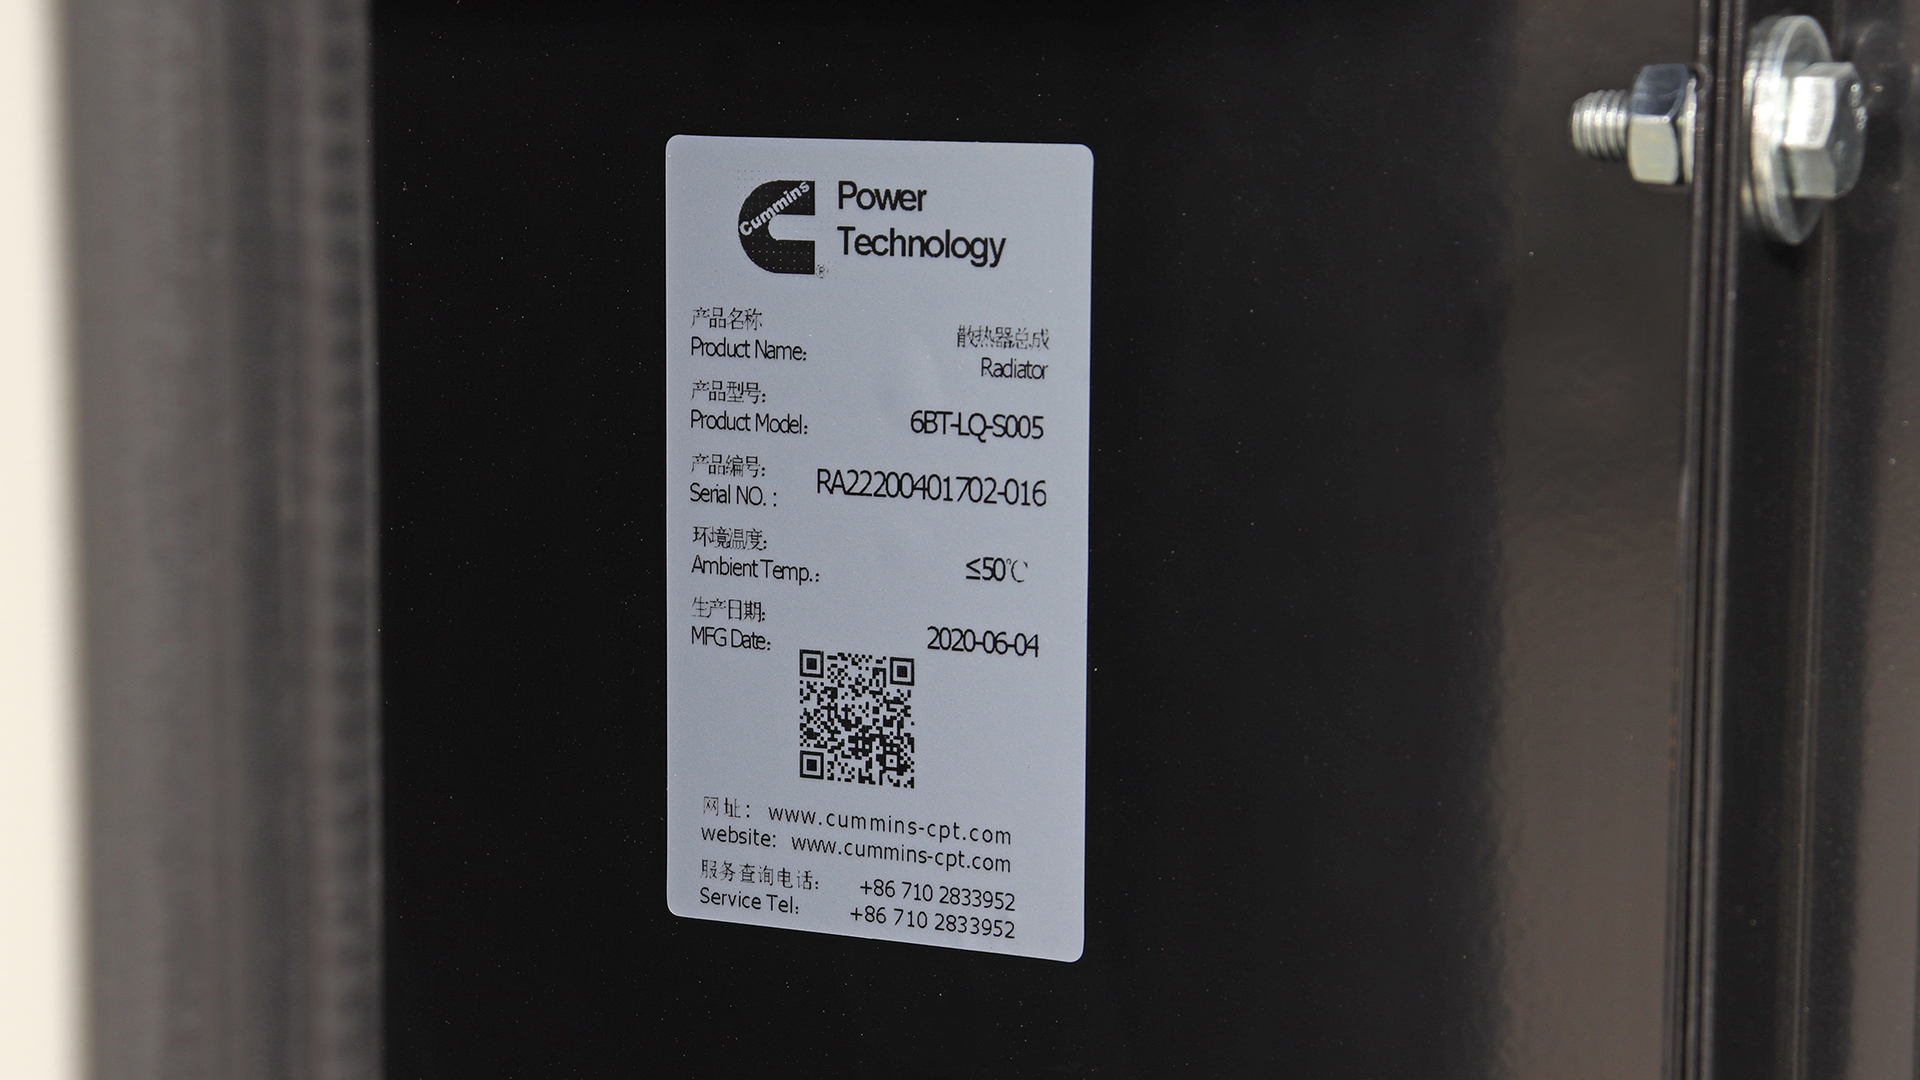 Label containing information about the UKC125-LR diesel generator